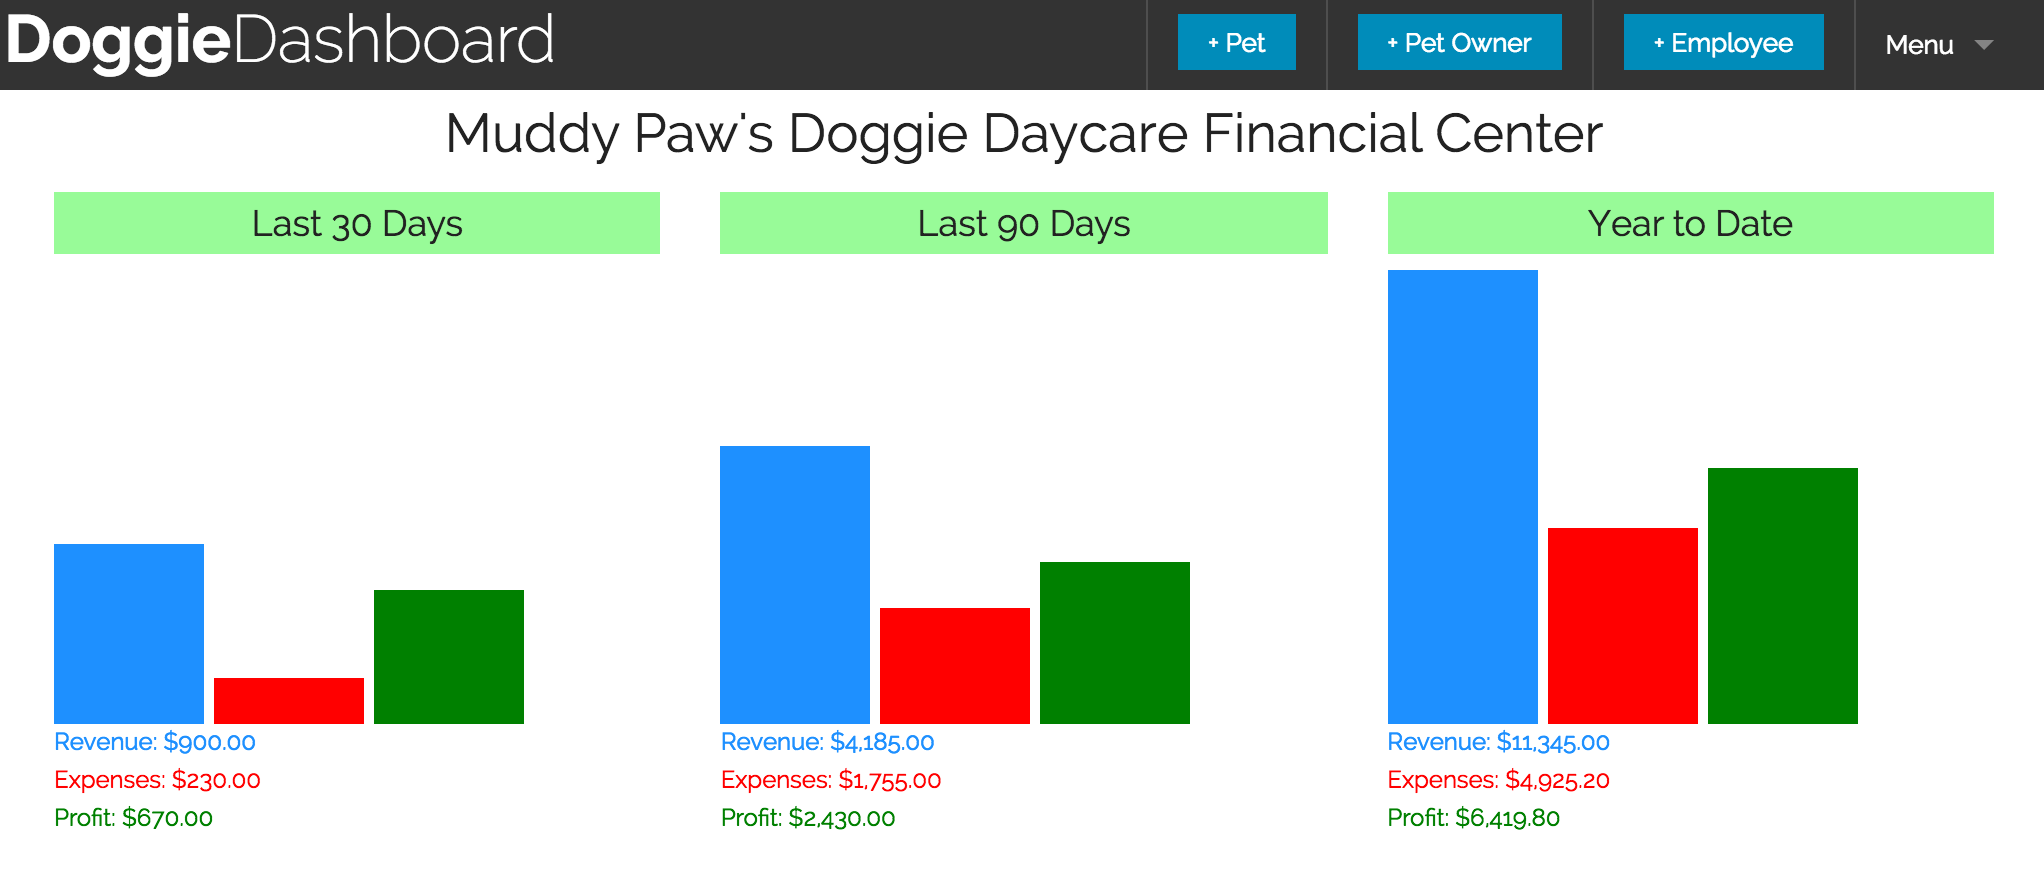 DoggieDashboard Free Dog Daycare Kennel Boarding Software - Best free invoicing software for small business online pet store